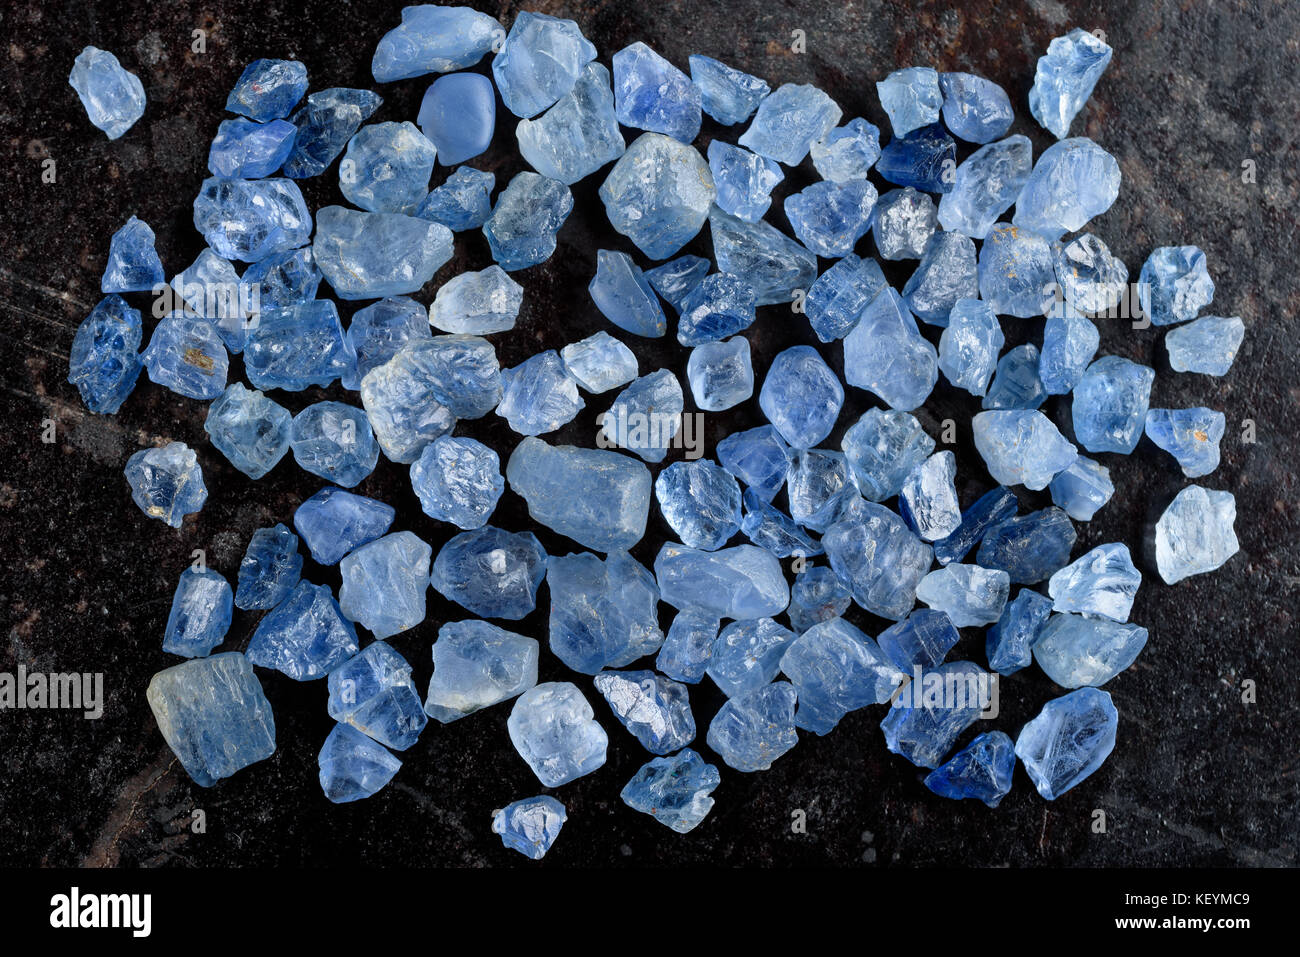 Collection of lovely blue rough and uncut sapphire gemstones